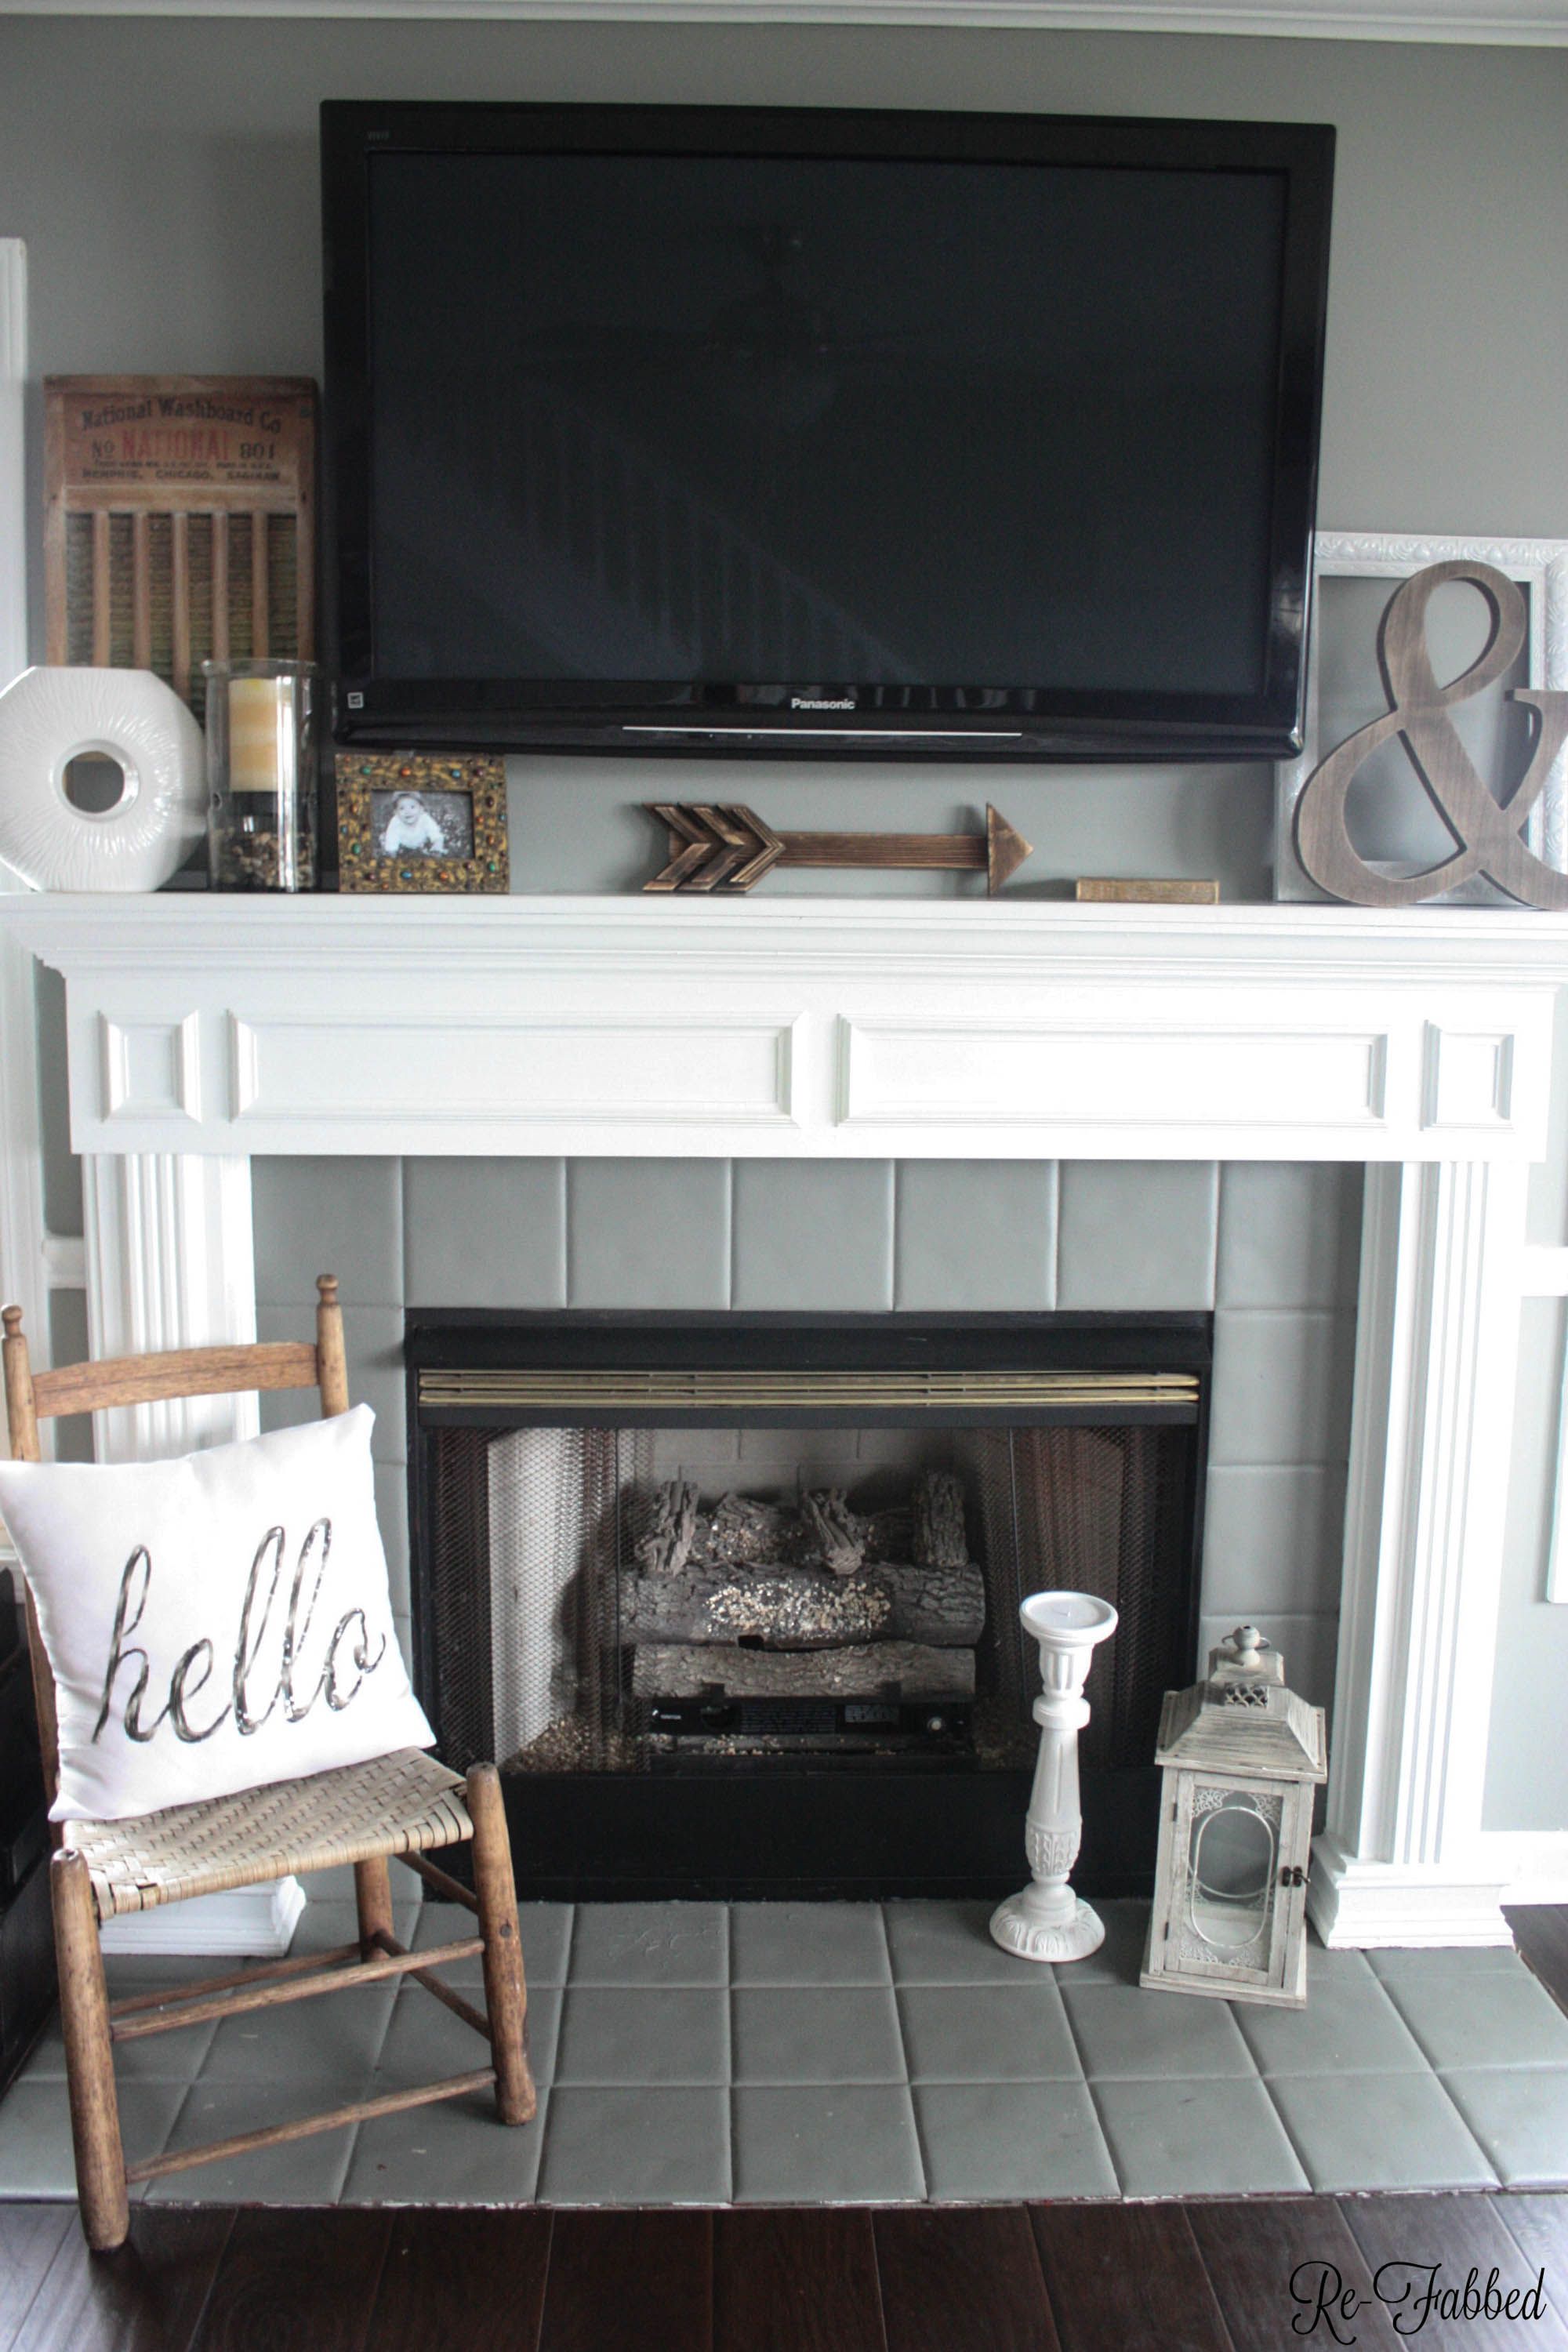 One of the biggest challenges in home decorating is how to decorate your mantel with a TV. This post highlights several different ideas on how to do just that! Must pin to remember this one.